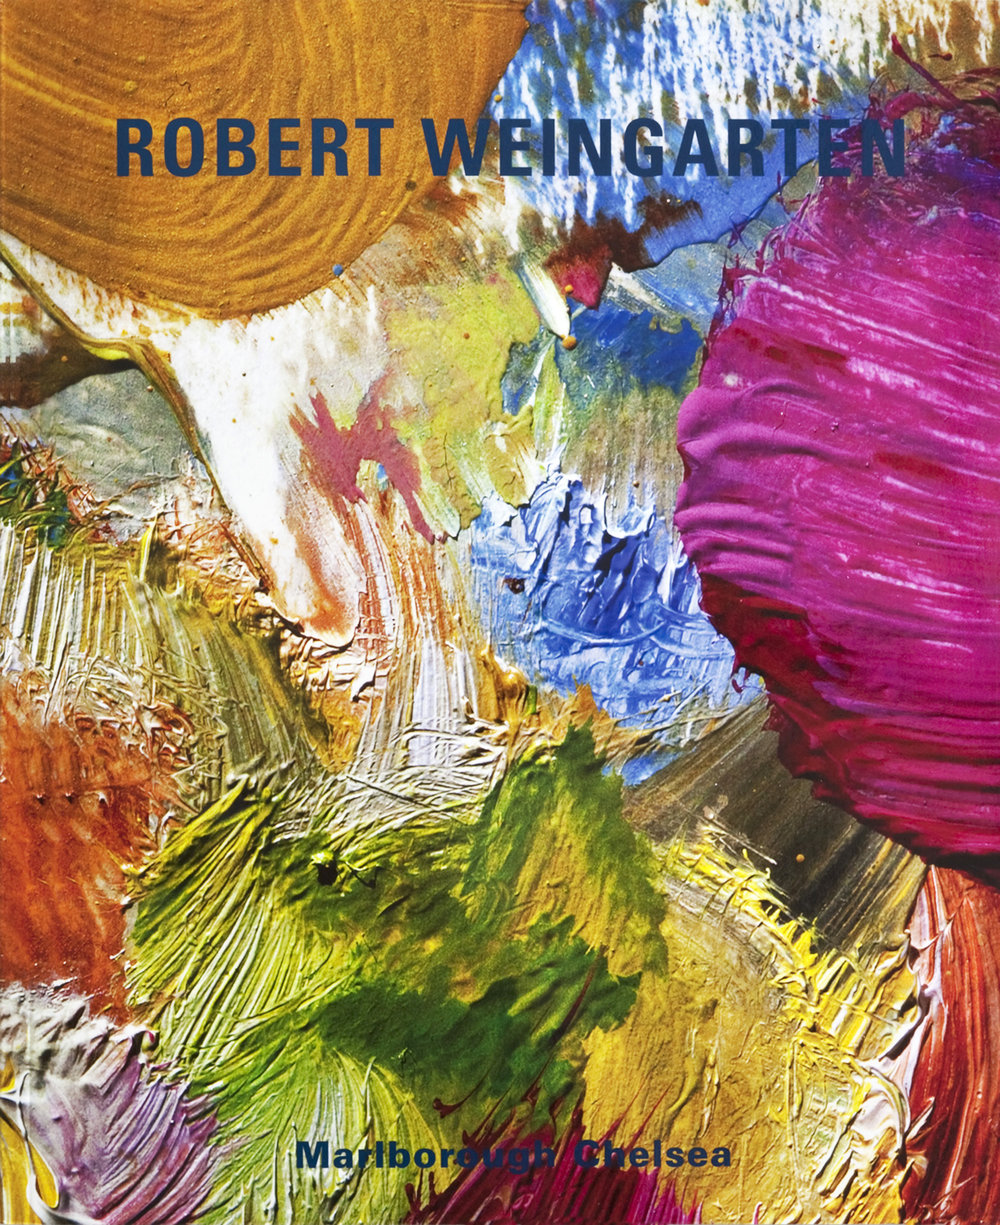 Palette Series by Robert Weingarten - Interview by Dale M. Lanzone(